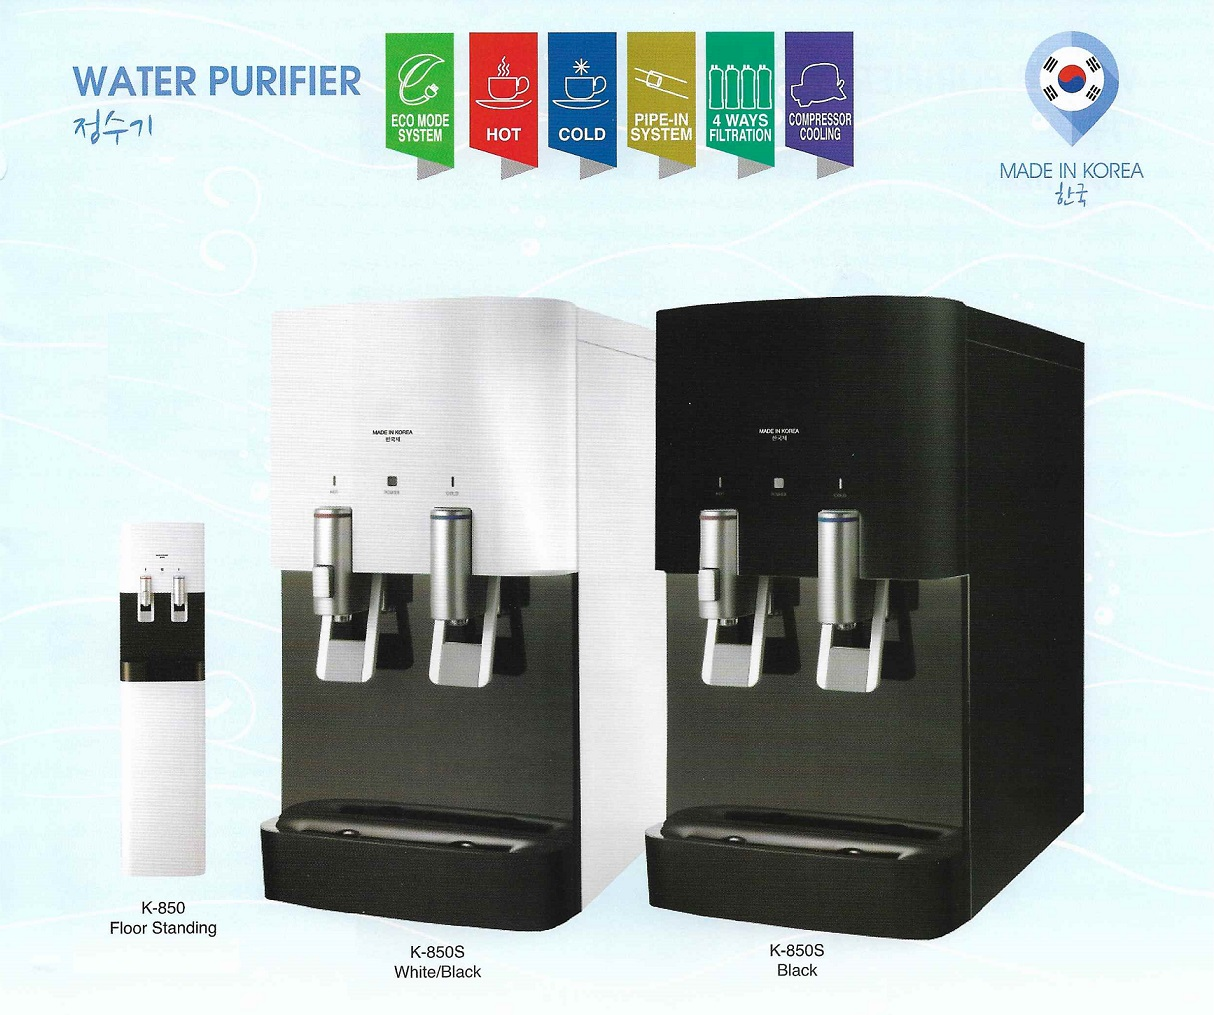 FW1004 KOREA FA-850S Energy Saving Hot & Cold Counter Top Water Filter Dispenser KUALA LUMPUR